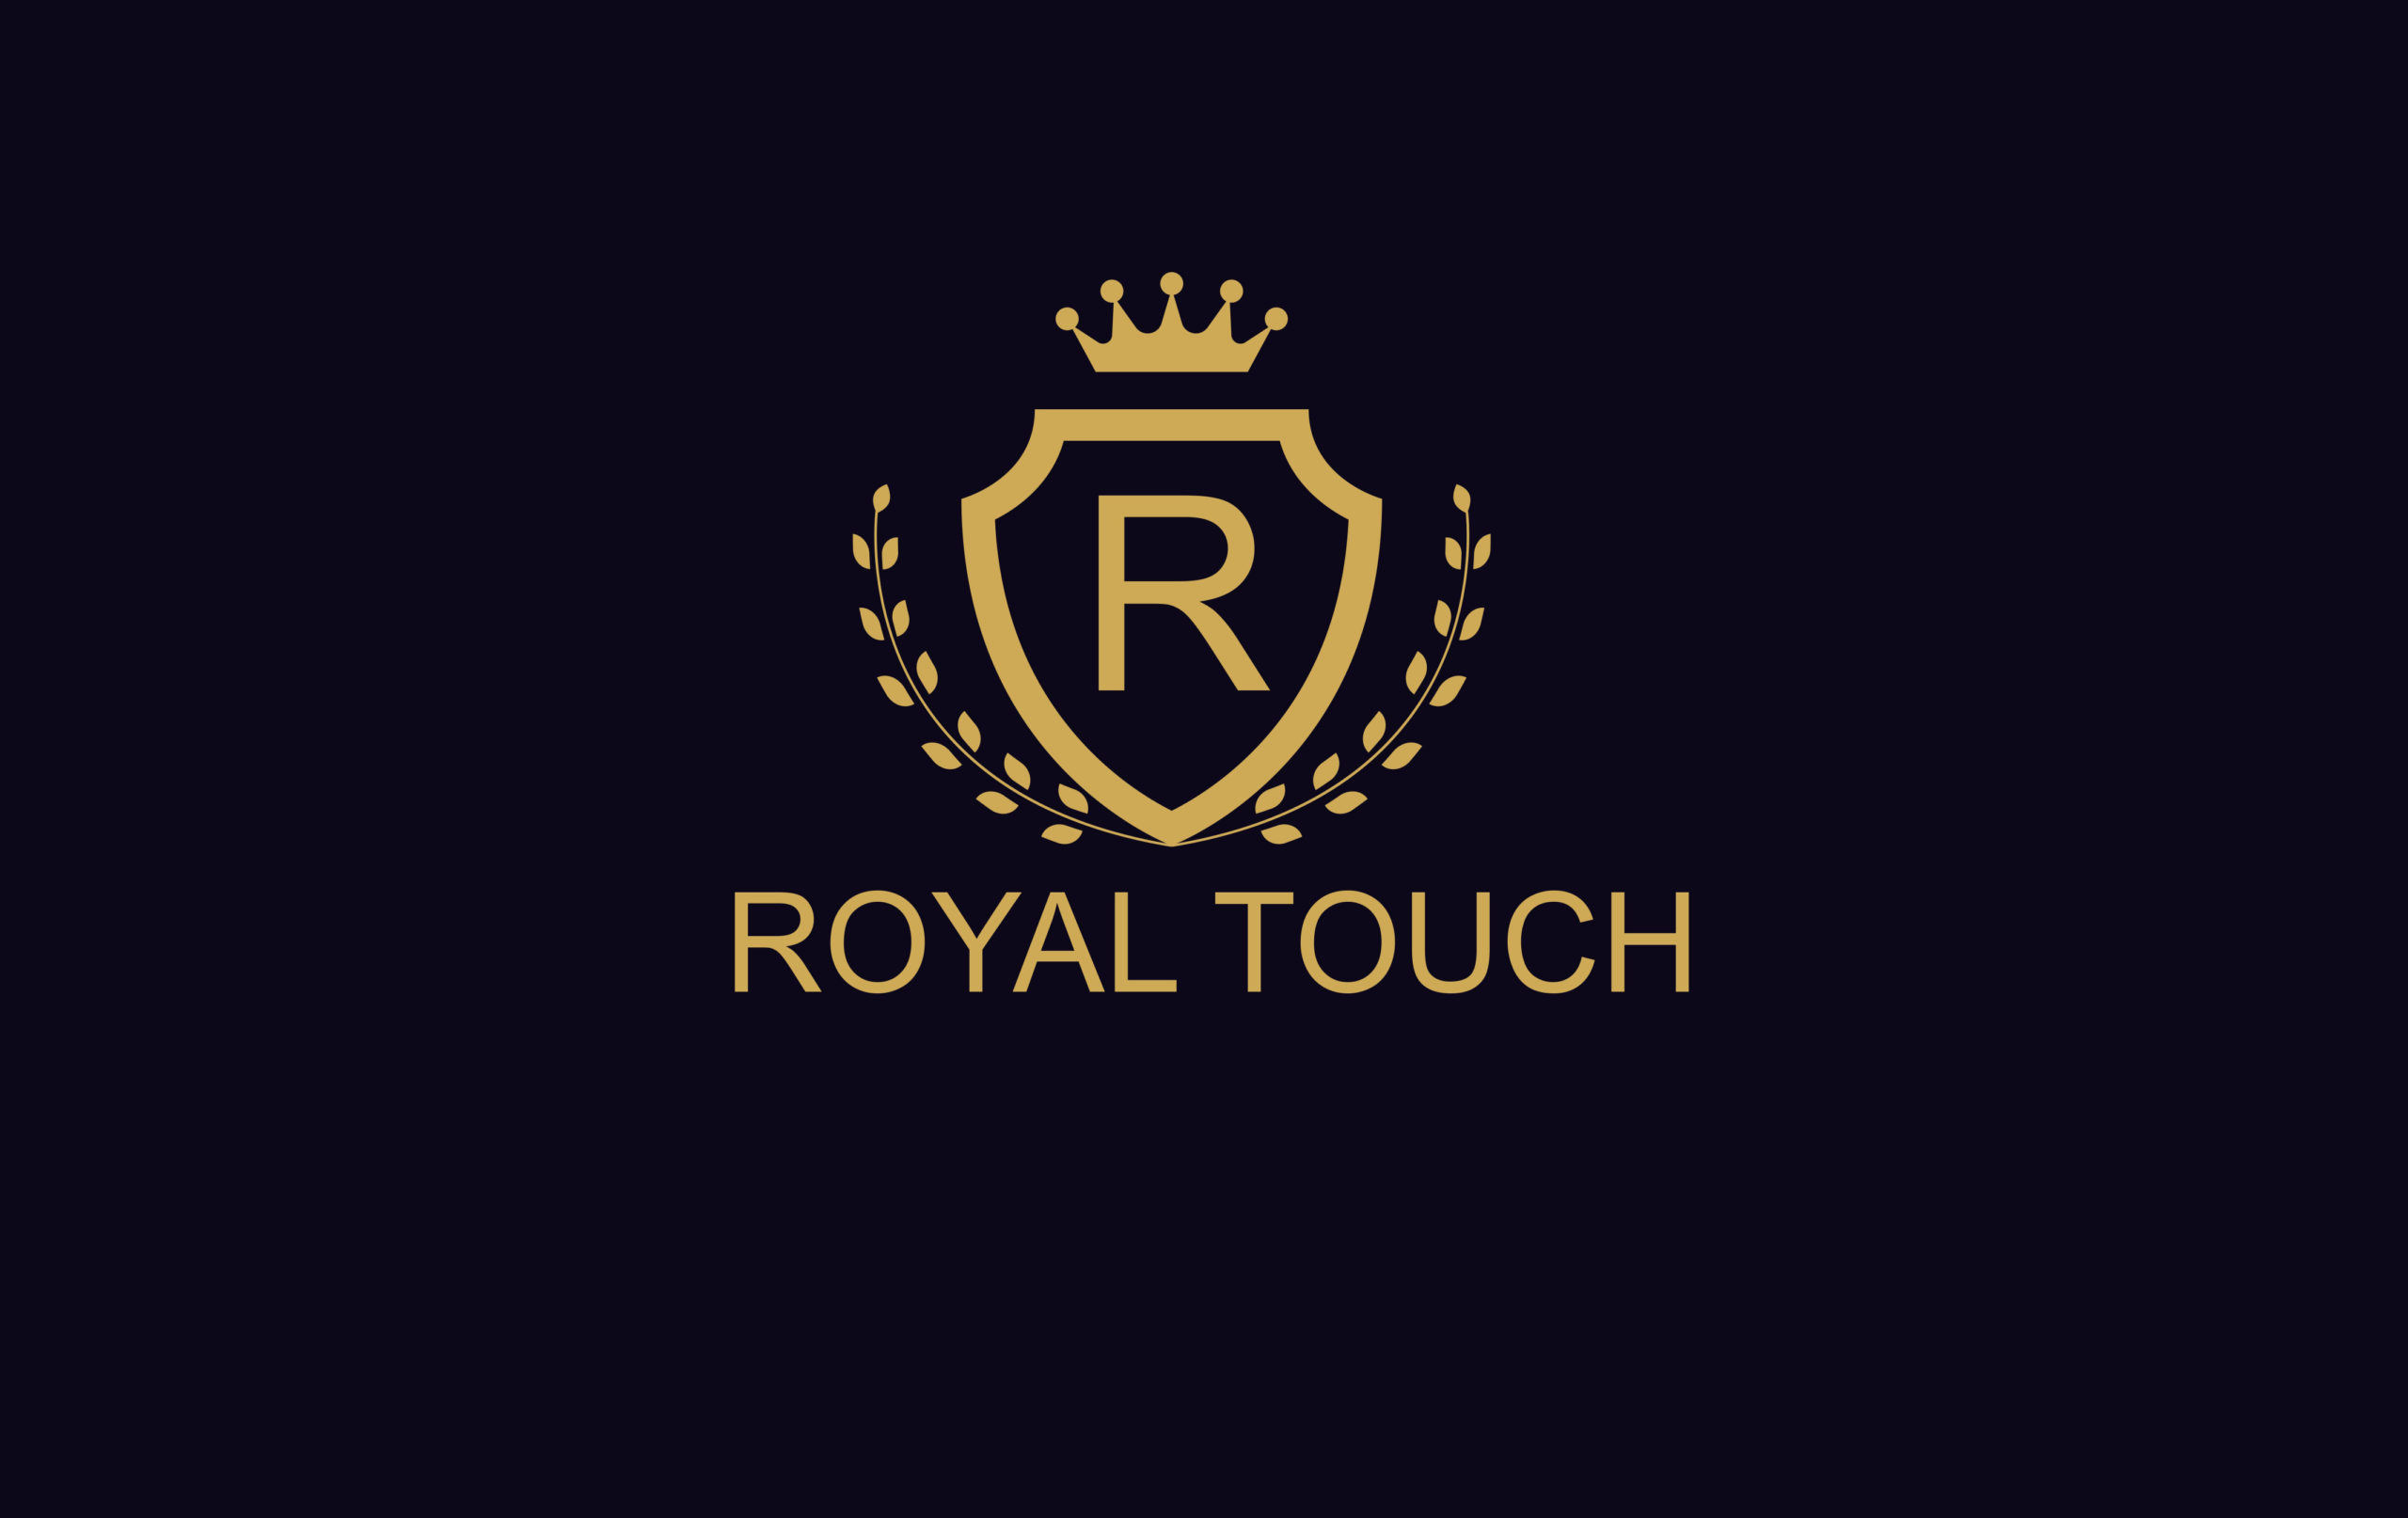 Royal Touch garment shop logo design by Badri Design